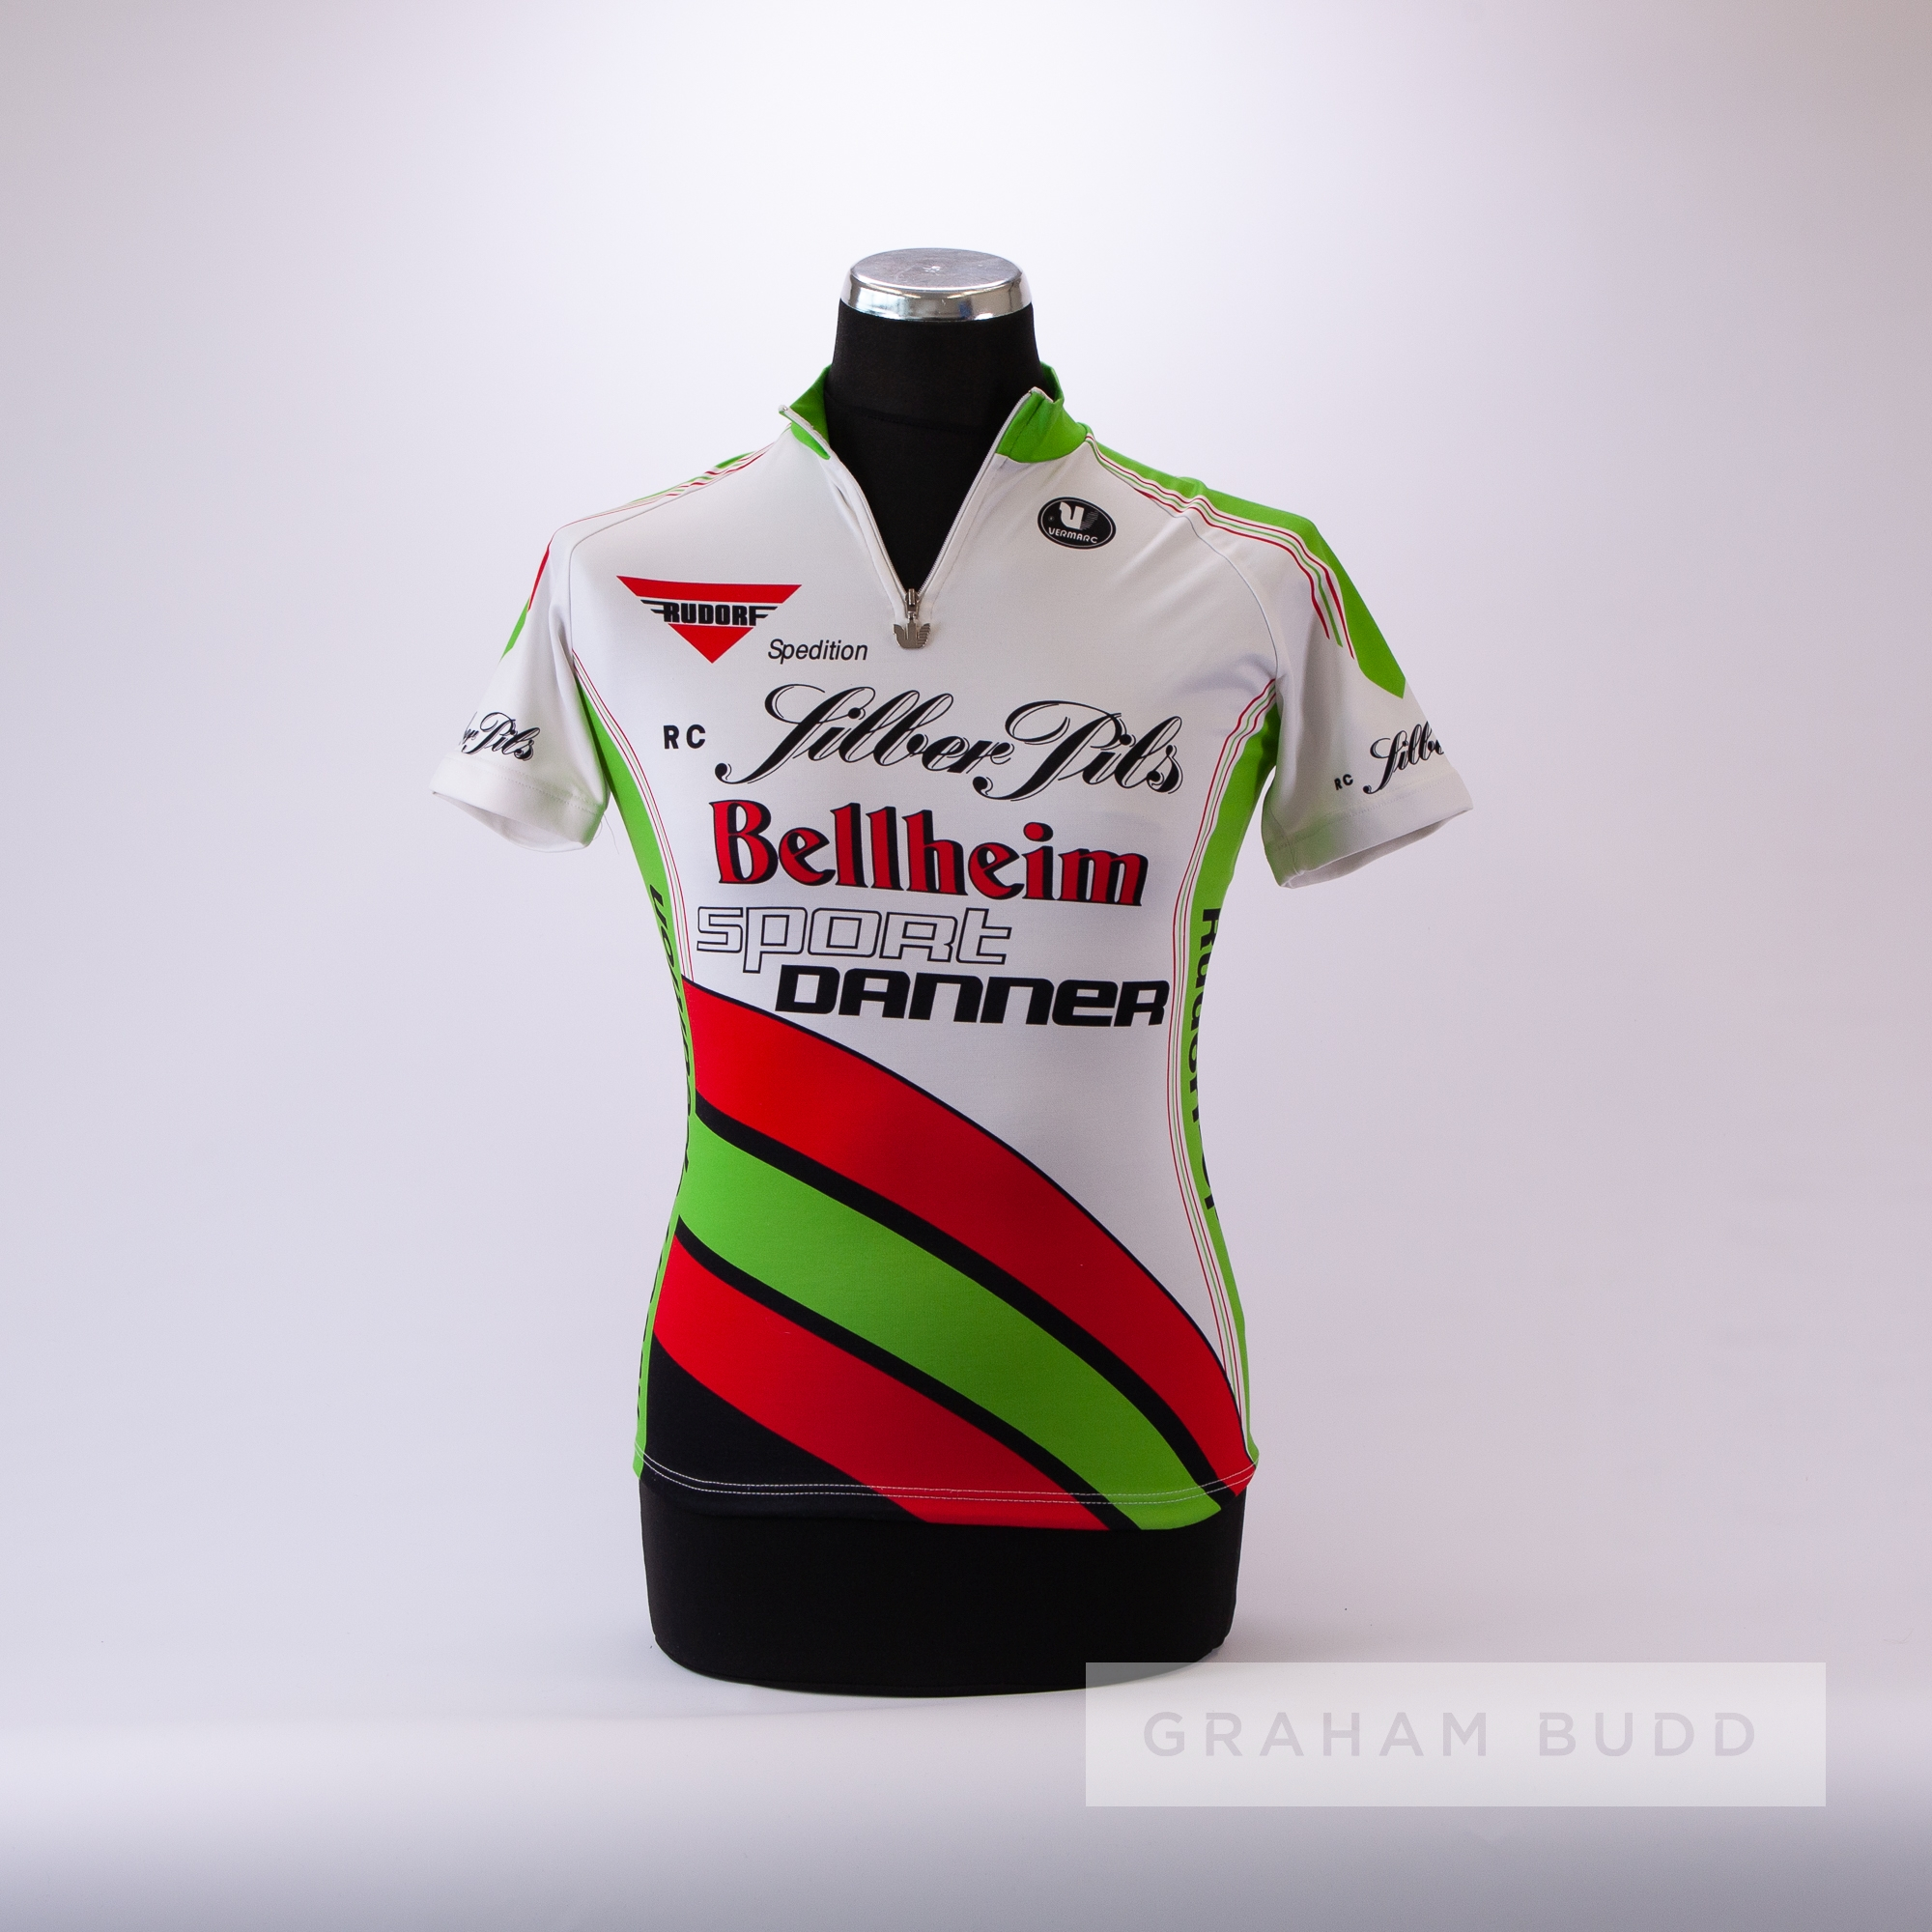 1995 white, red, green and black Vermarc Bellheim Euro Cycling race jersey, scarce, polyester - Image 3 of 4